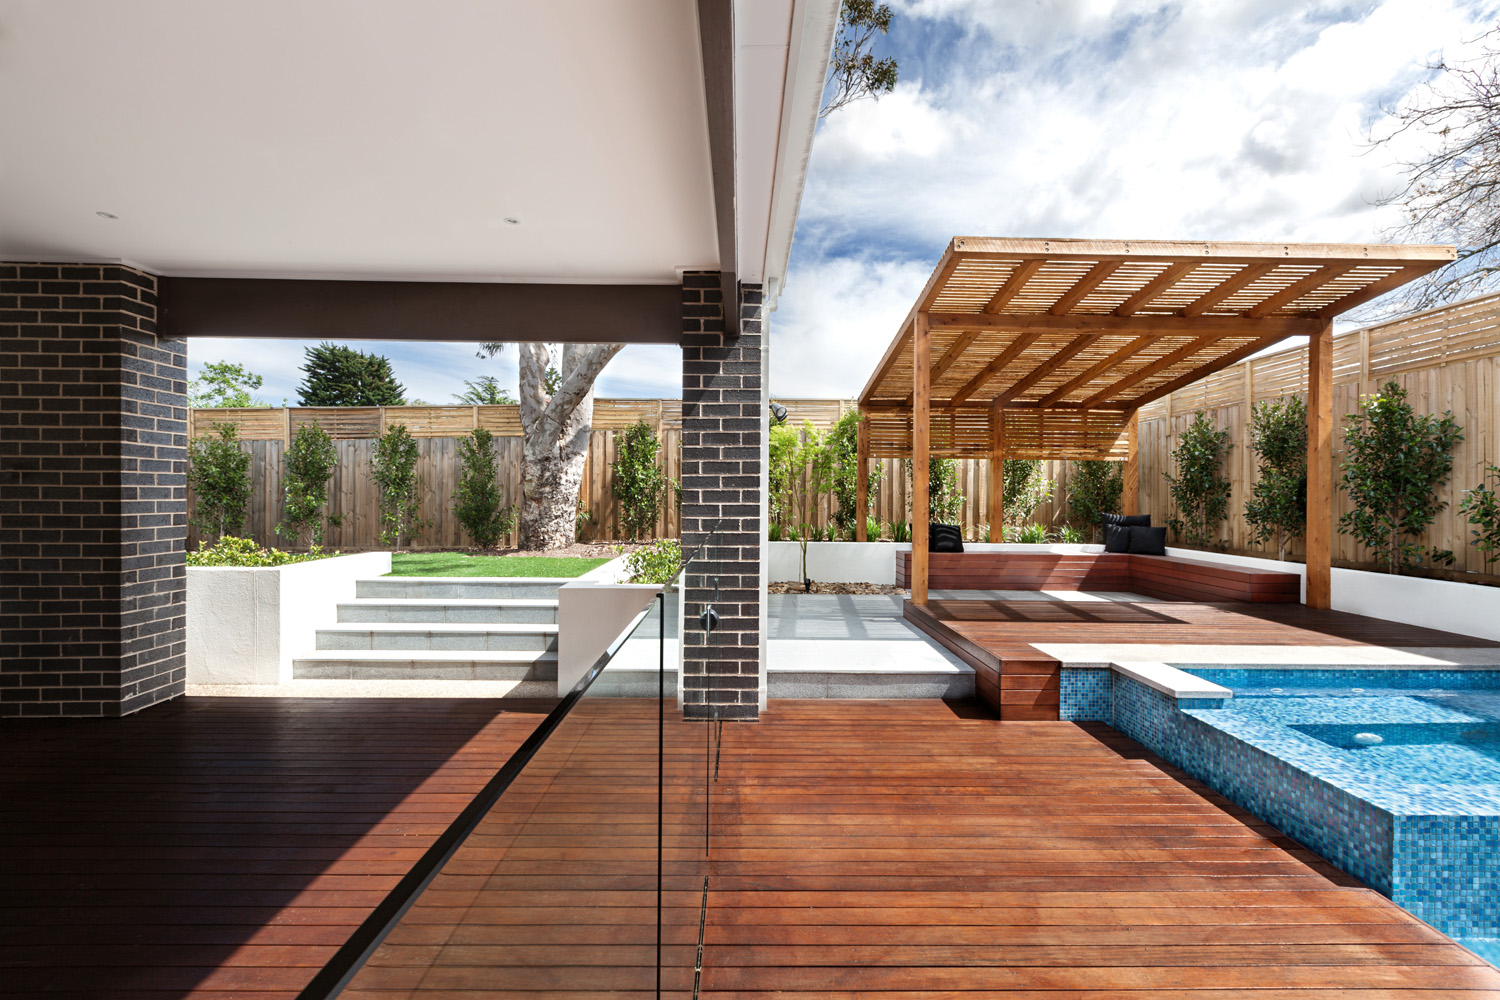 REAL POOL: Fully-tiled pool and spa design